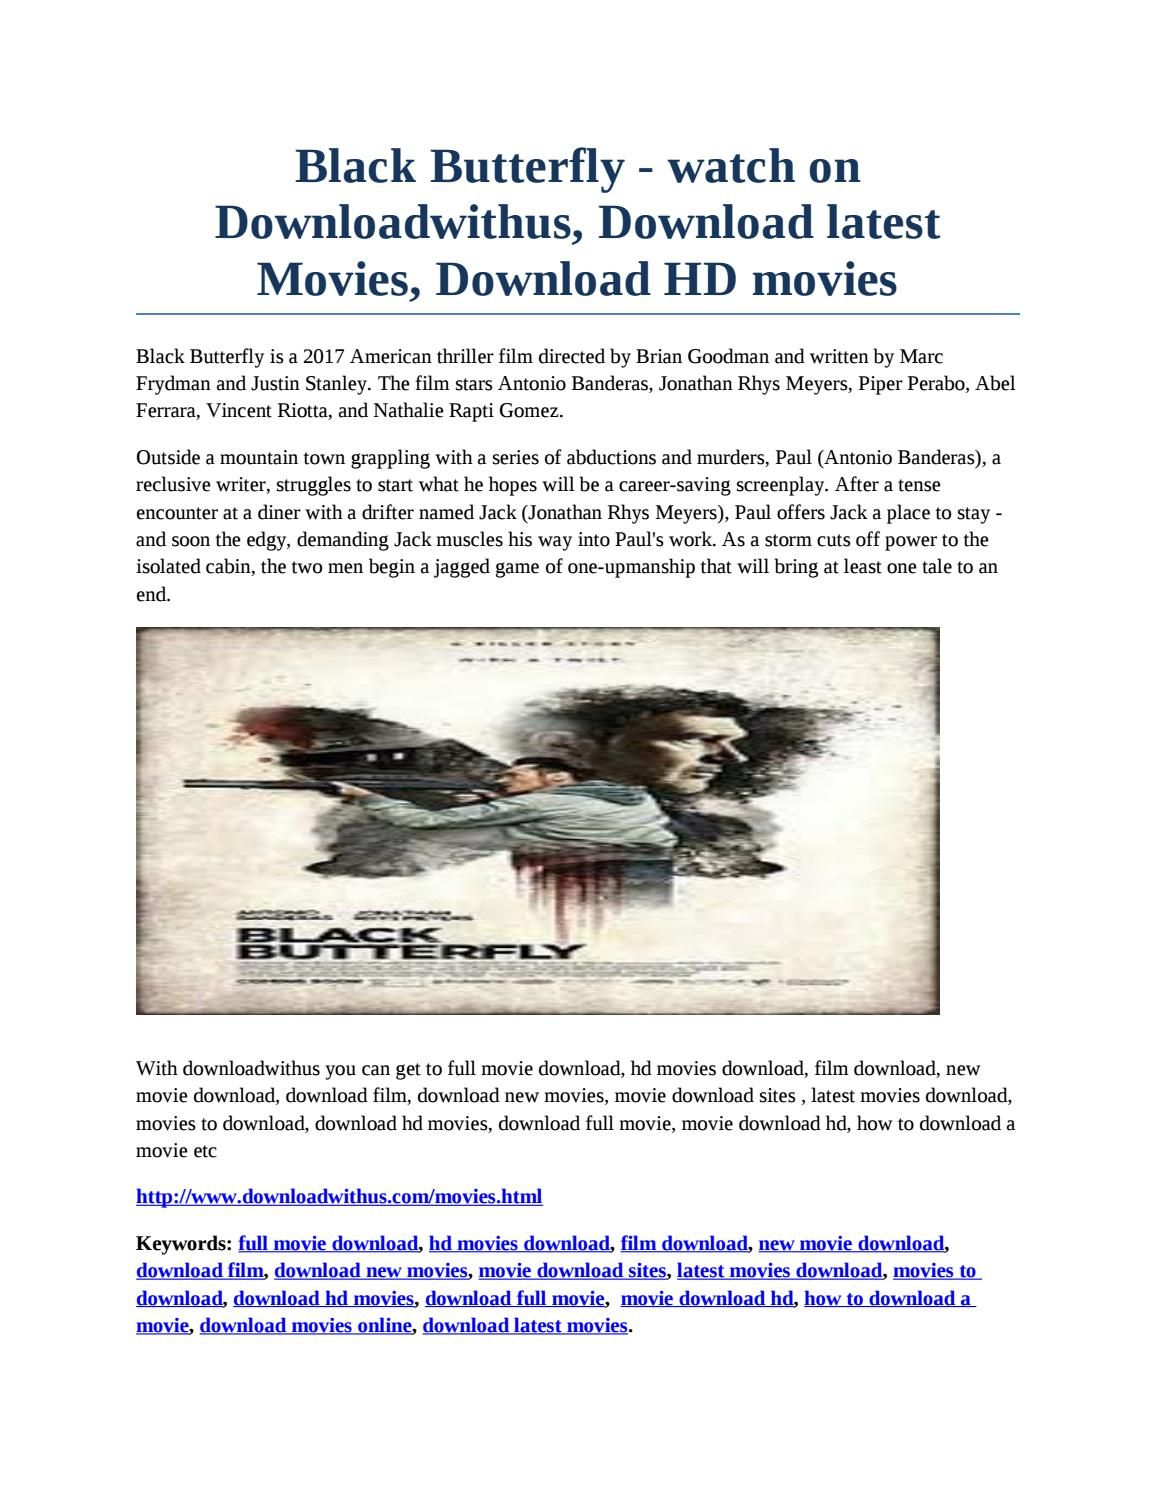 black butterfly- watch on downloadwithus, download latest movies